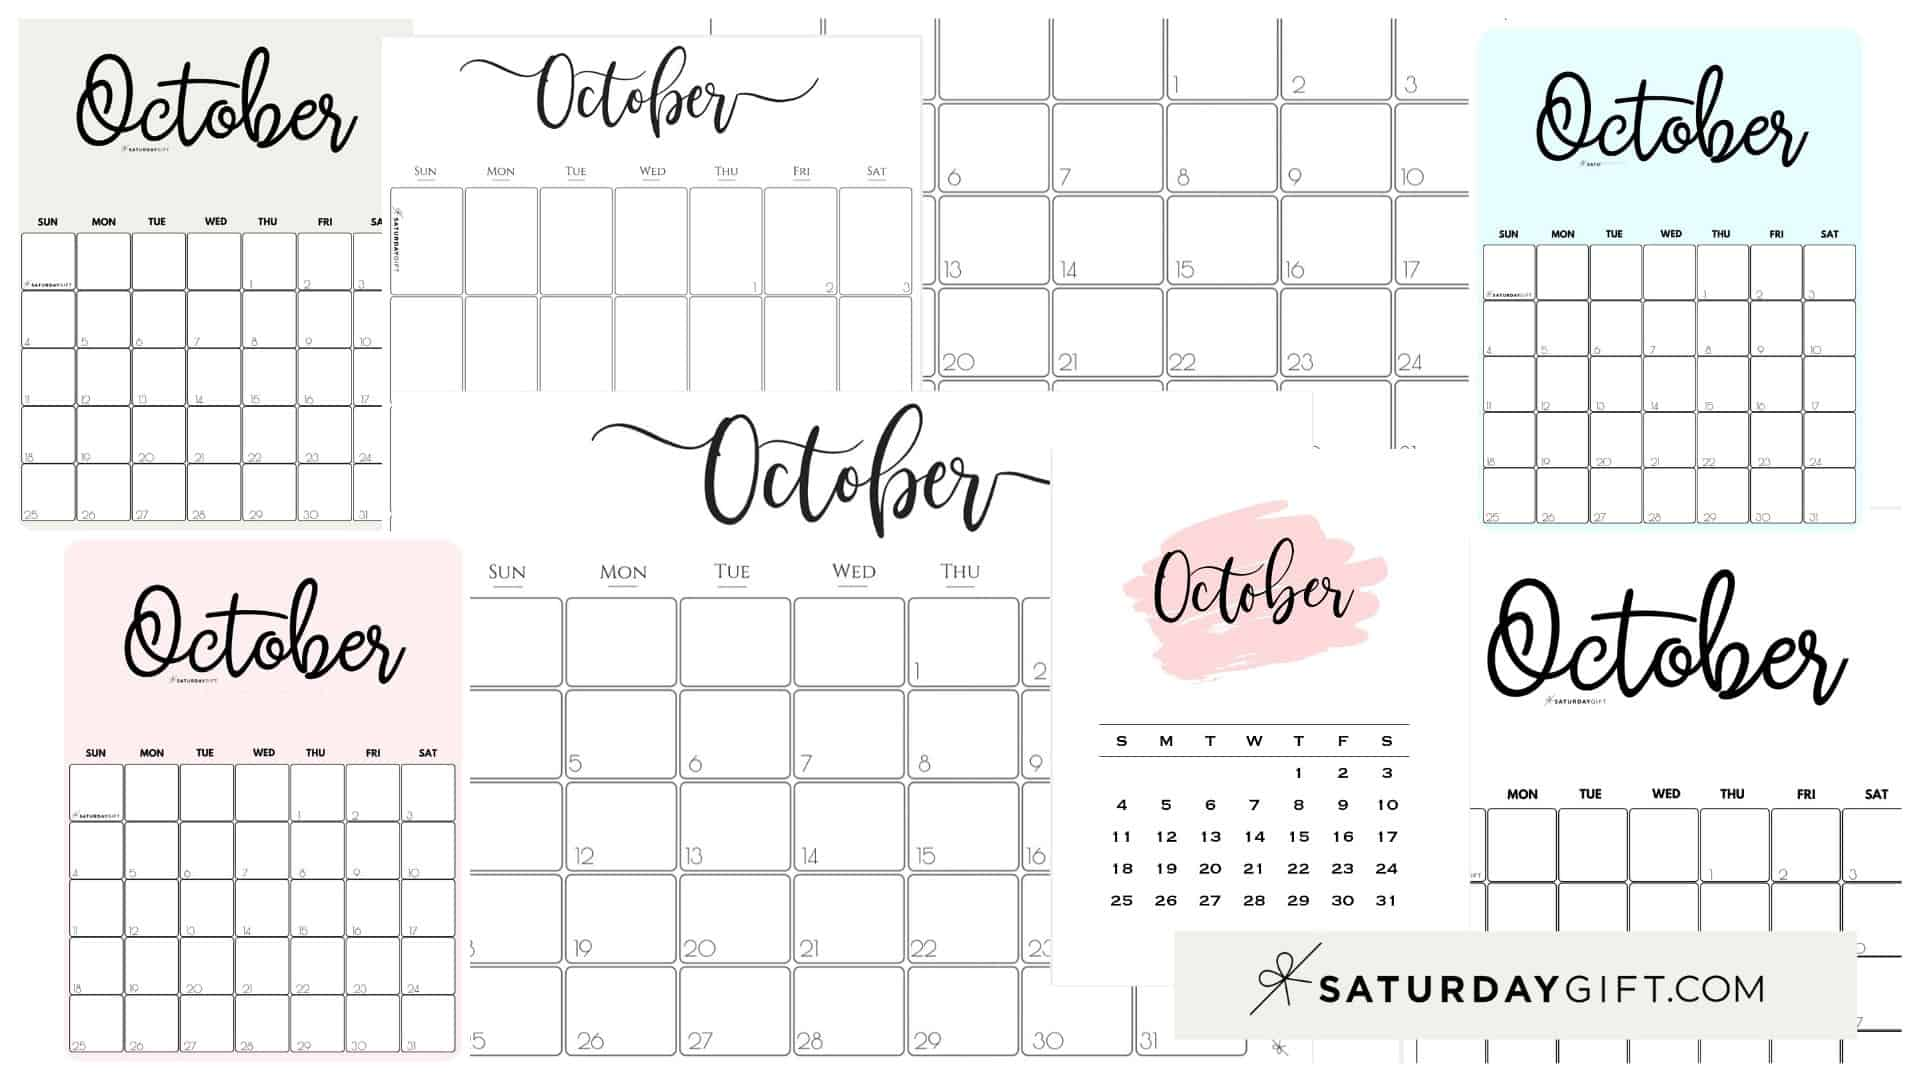 10 Oct Cute Free Printable October Monthly Calendars Featured Collage Image SaturdayGift